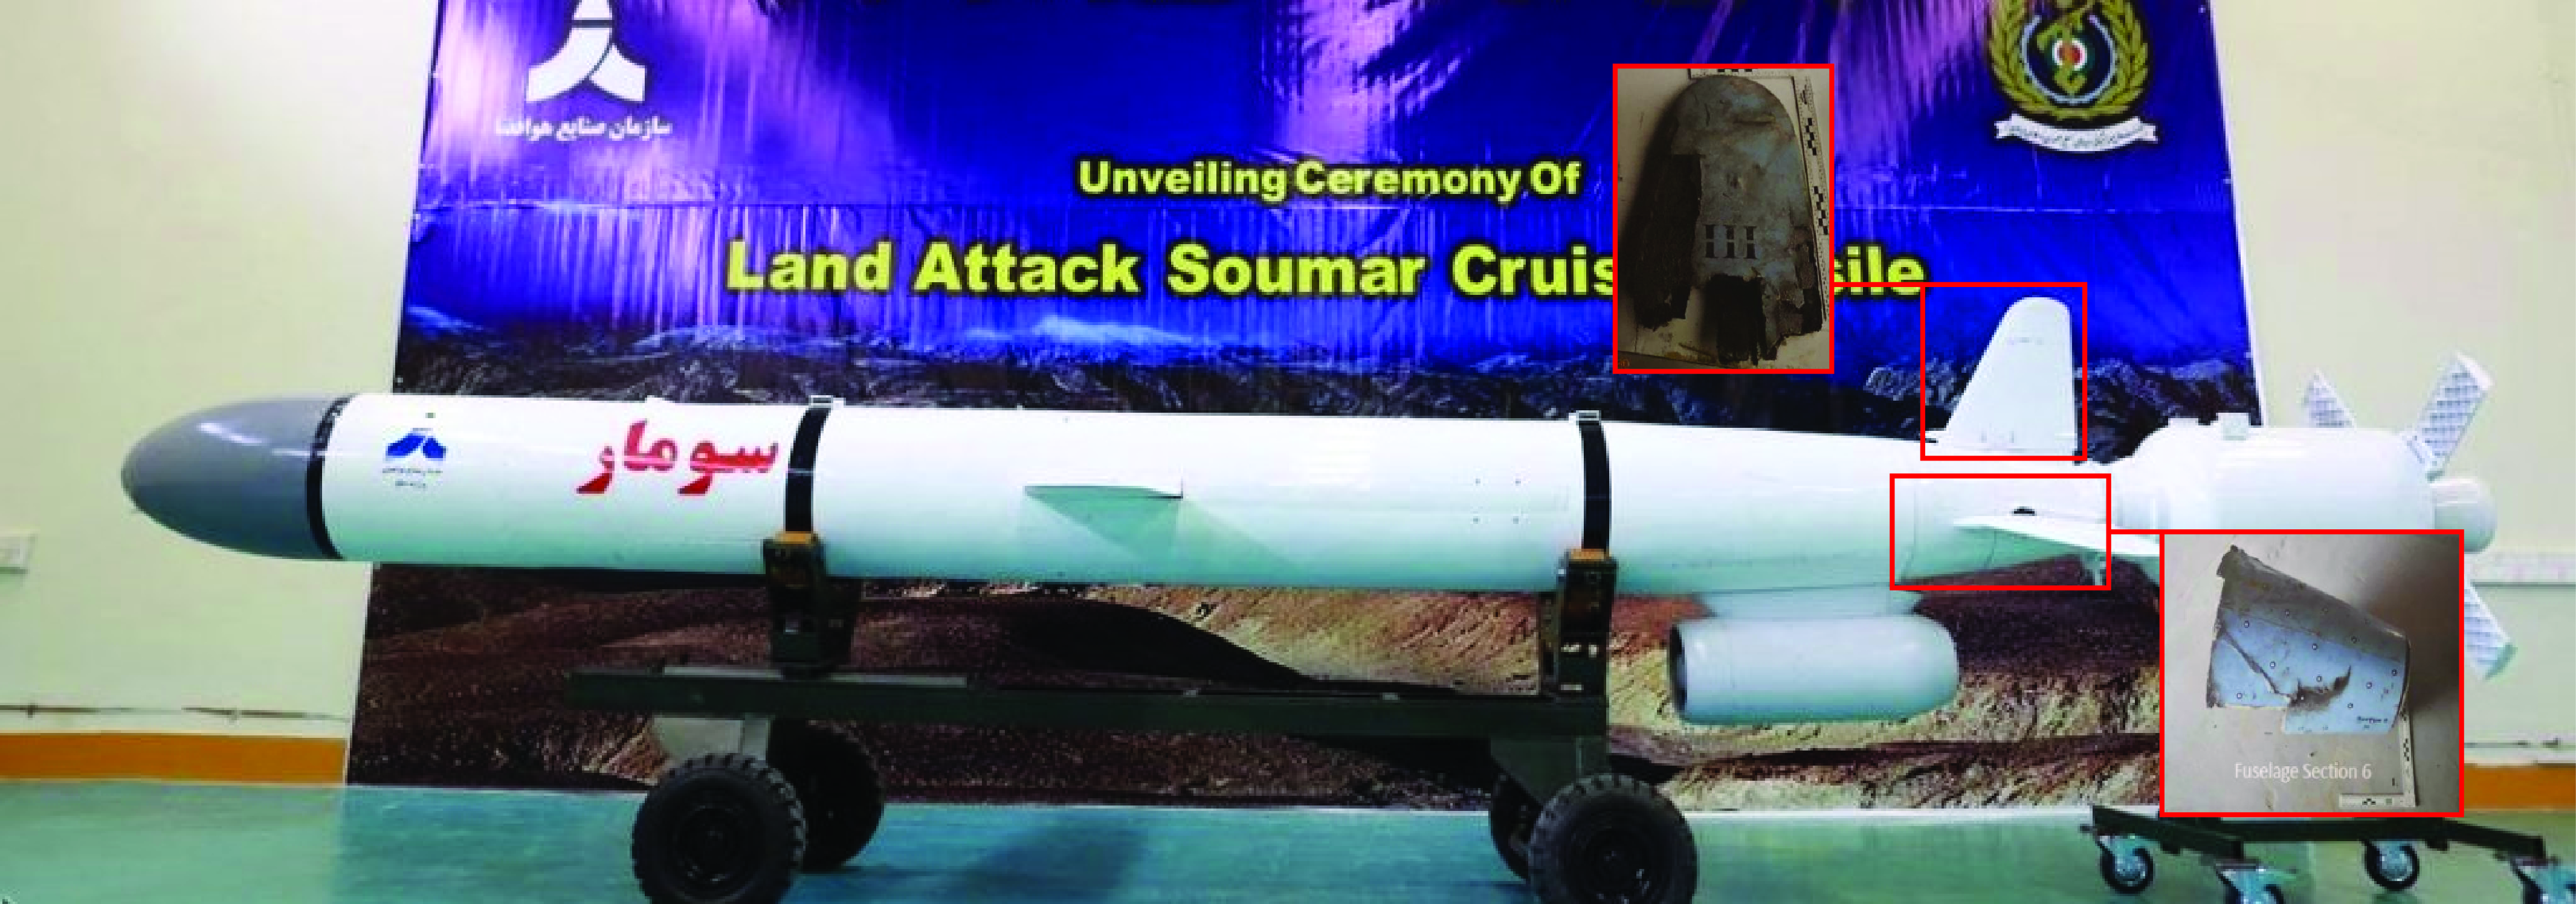 Saudi-led Coalition Confirms Houthis Used Cruise Missile In Abha Airport Attack (Photos)